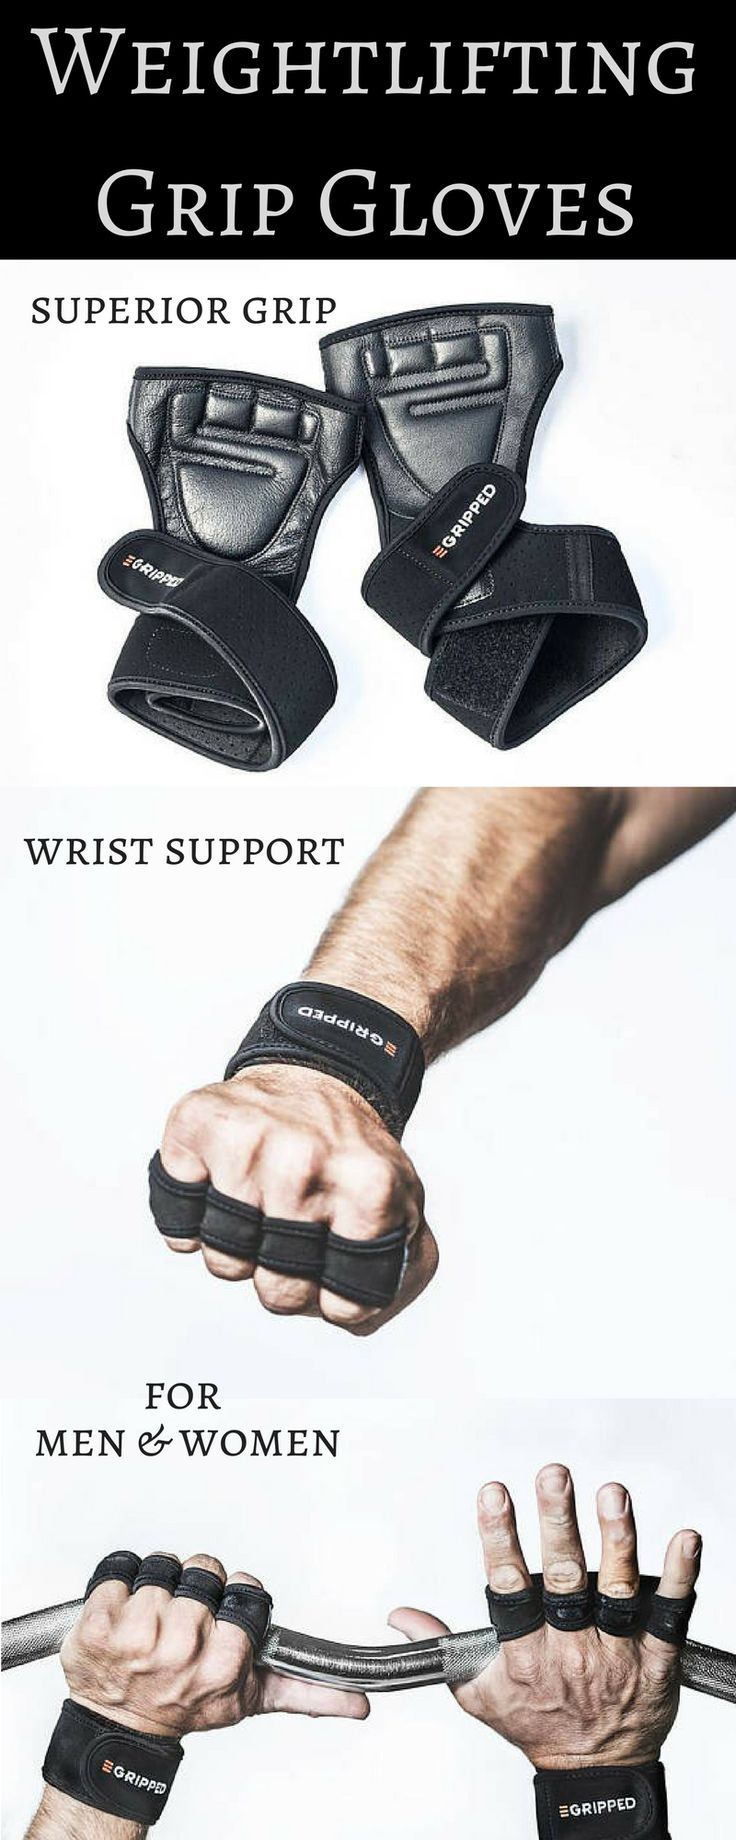 Going to invest in a pair of these gloves,  my calluses are getting worse.  Thank God the hubby lifts too and understands LOL   Crossfit | Weightlifting | Workout Gloves | Crossfit Glove | Gym Gloves |  Pull Up Gloves #ad #weightlifting #workout